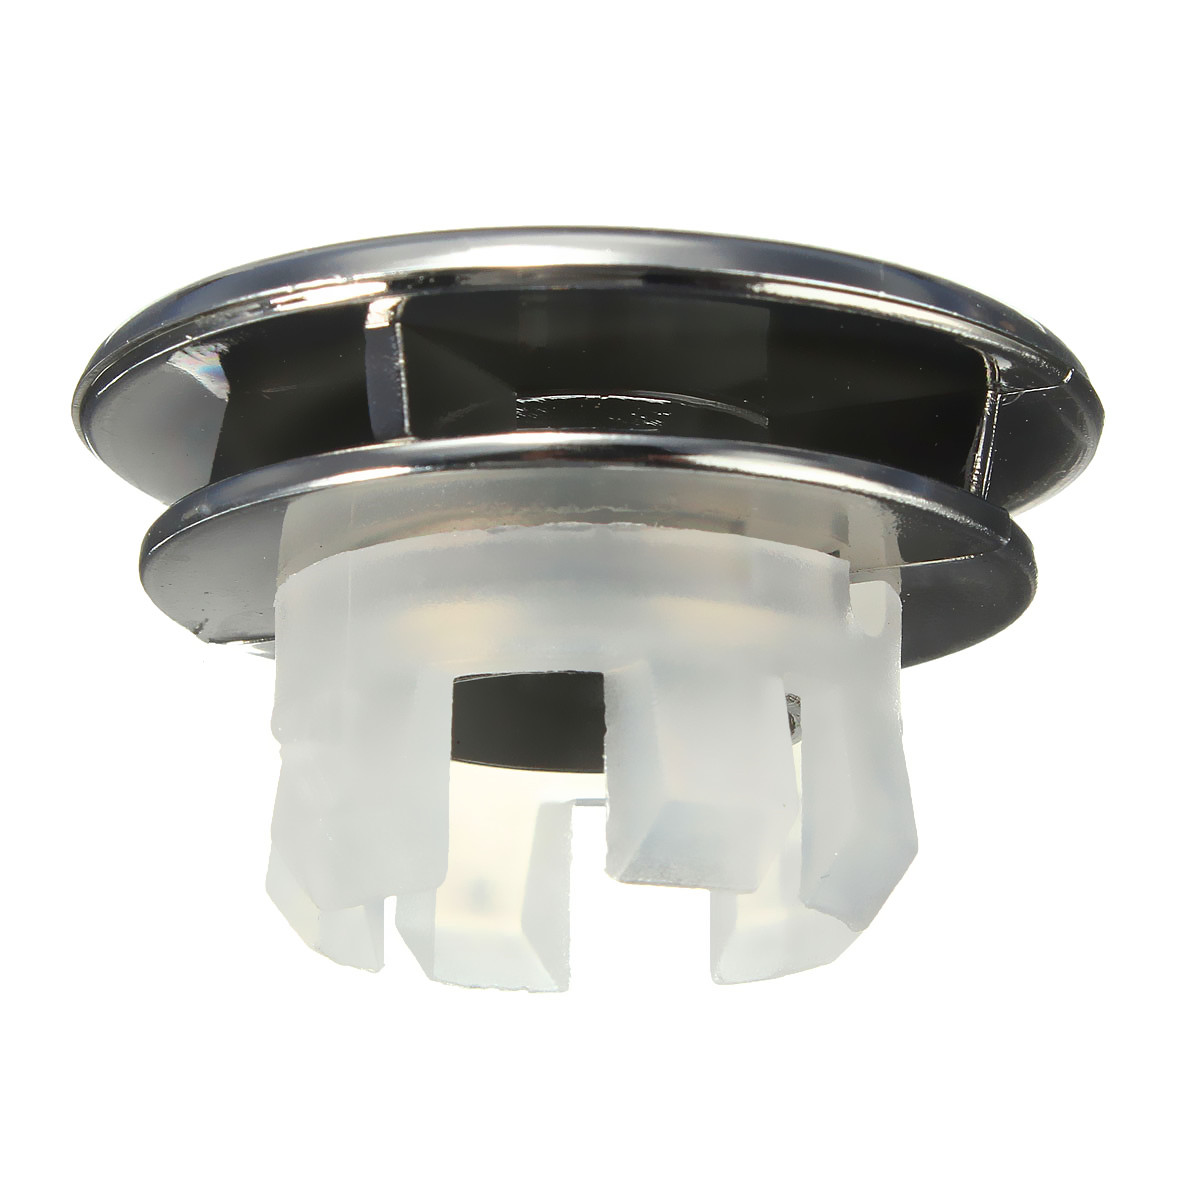 Round Overflow Cover Tidy Trim Chrome For Bathroom Basin